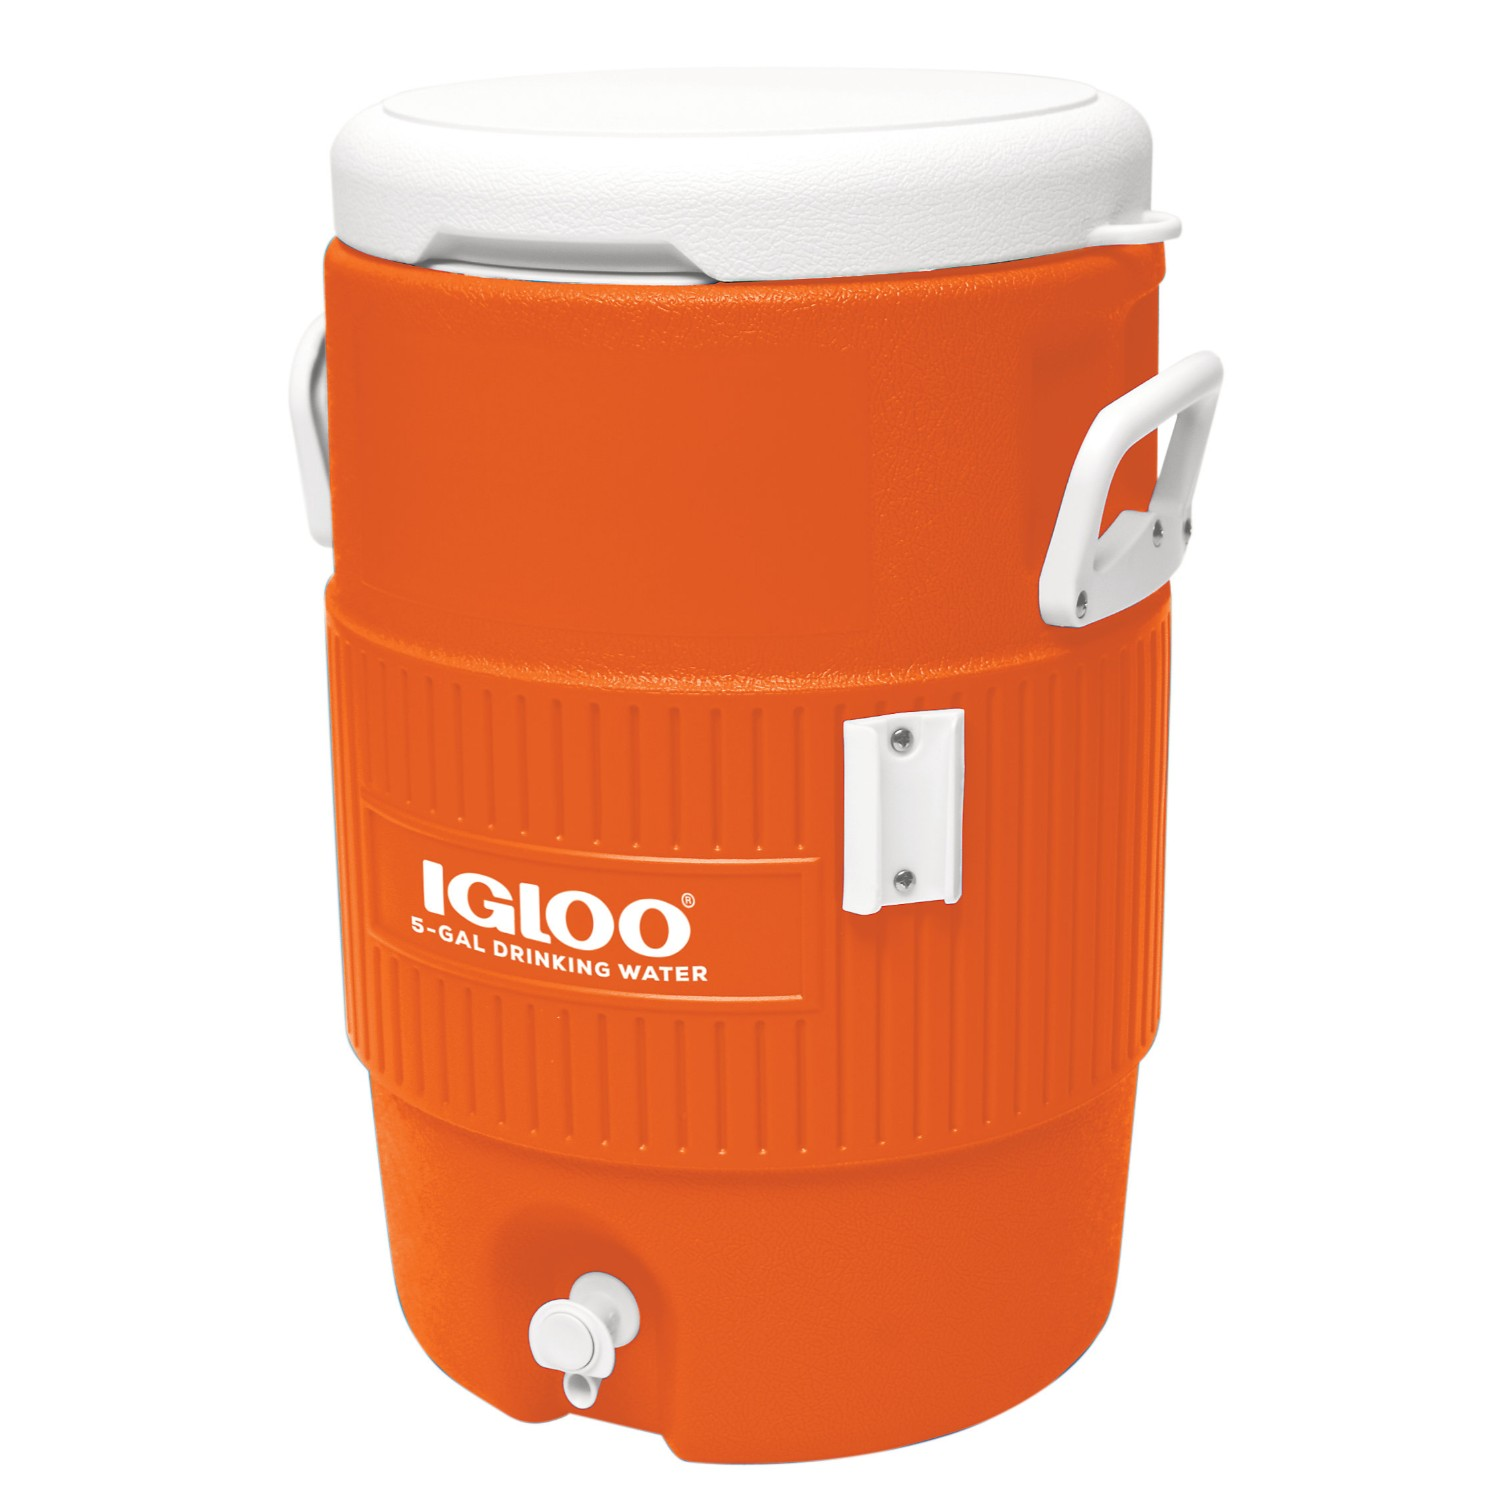 Igloo 5-Gallon Beverage Container